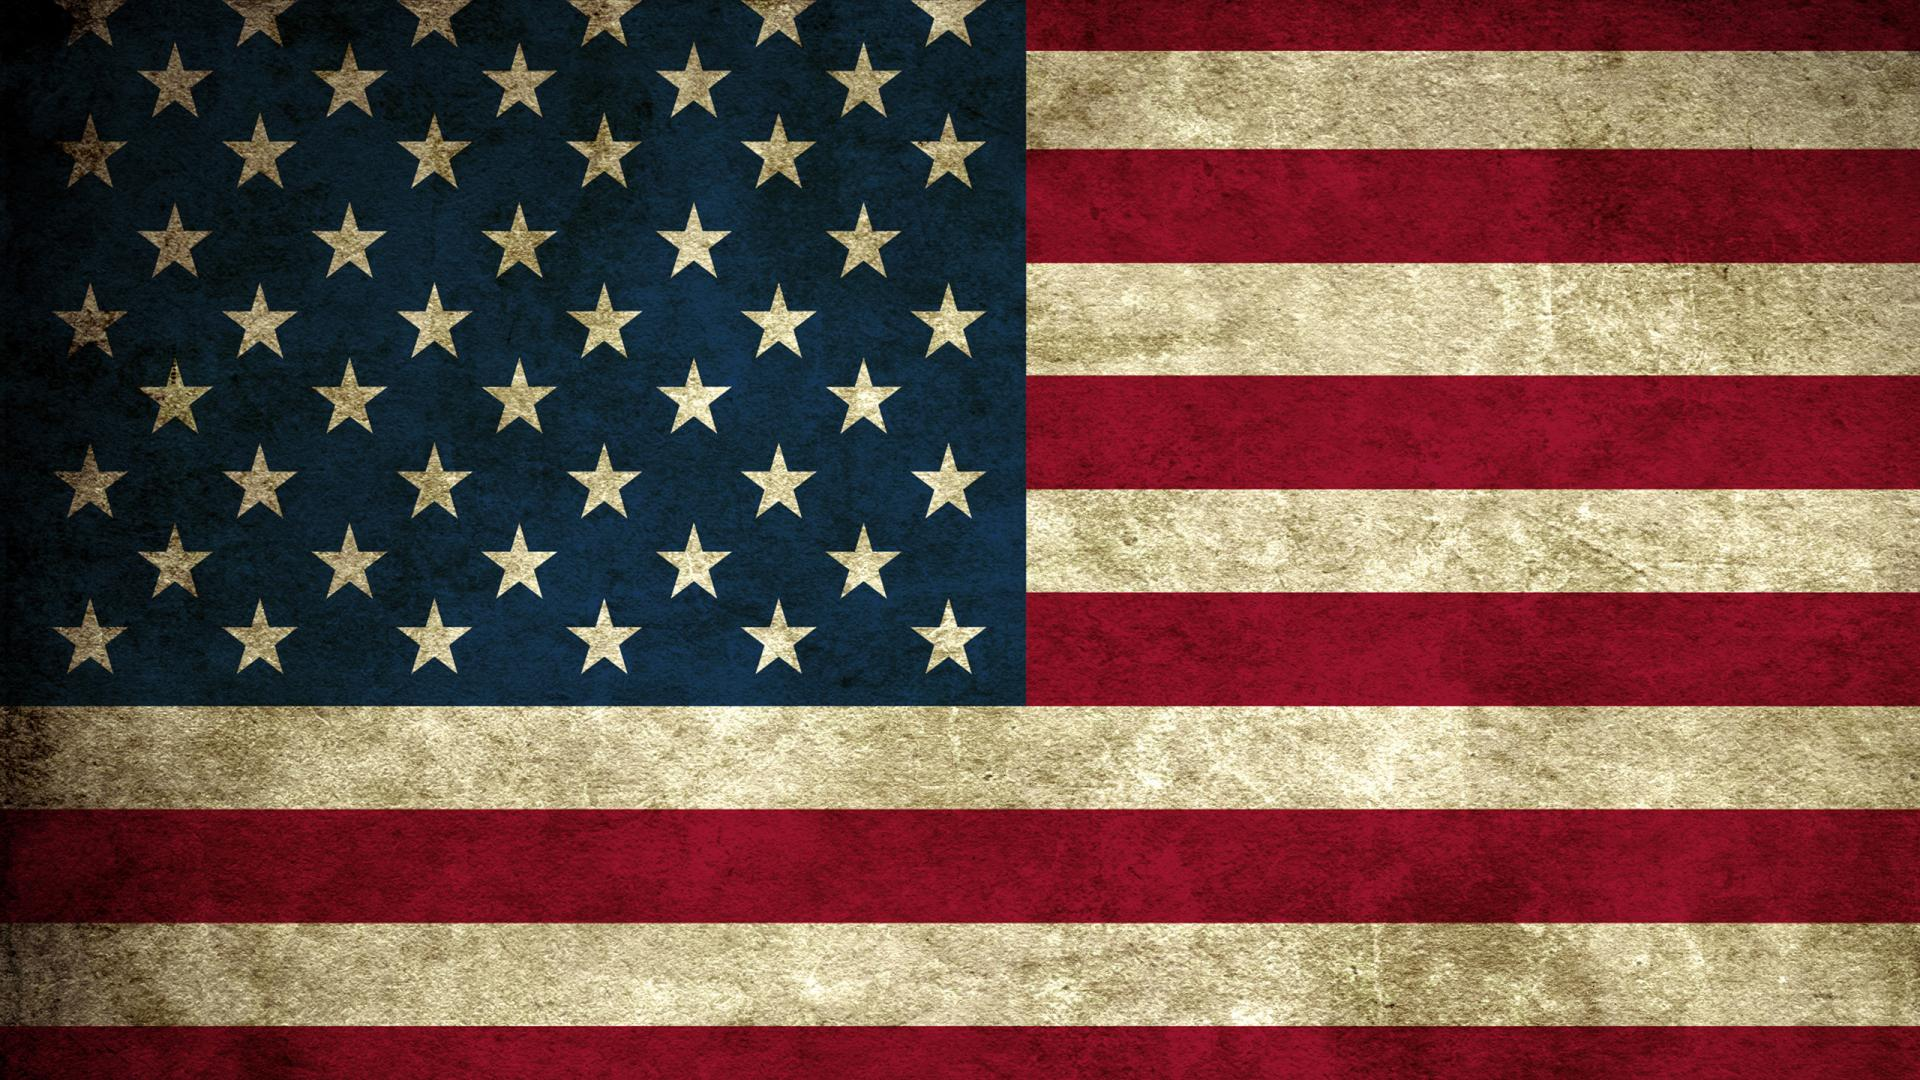 American USA Flag HD Wallpaper American USA Flag 1920x1080